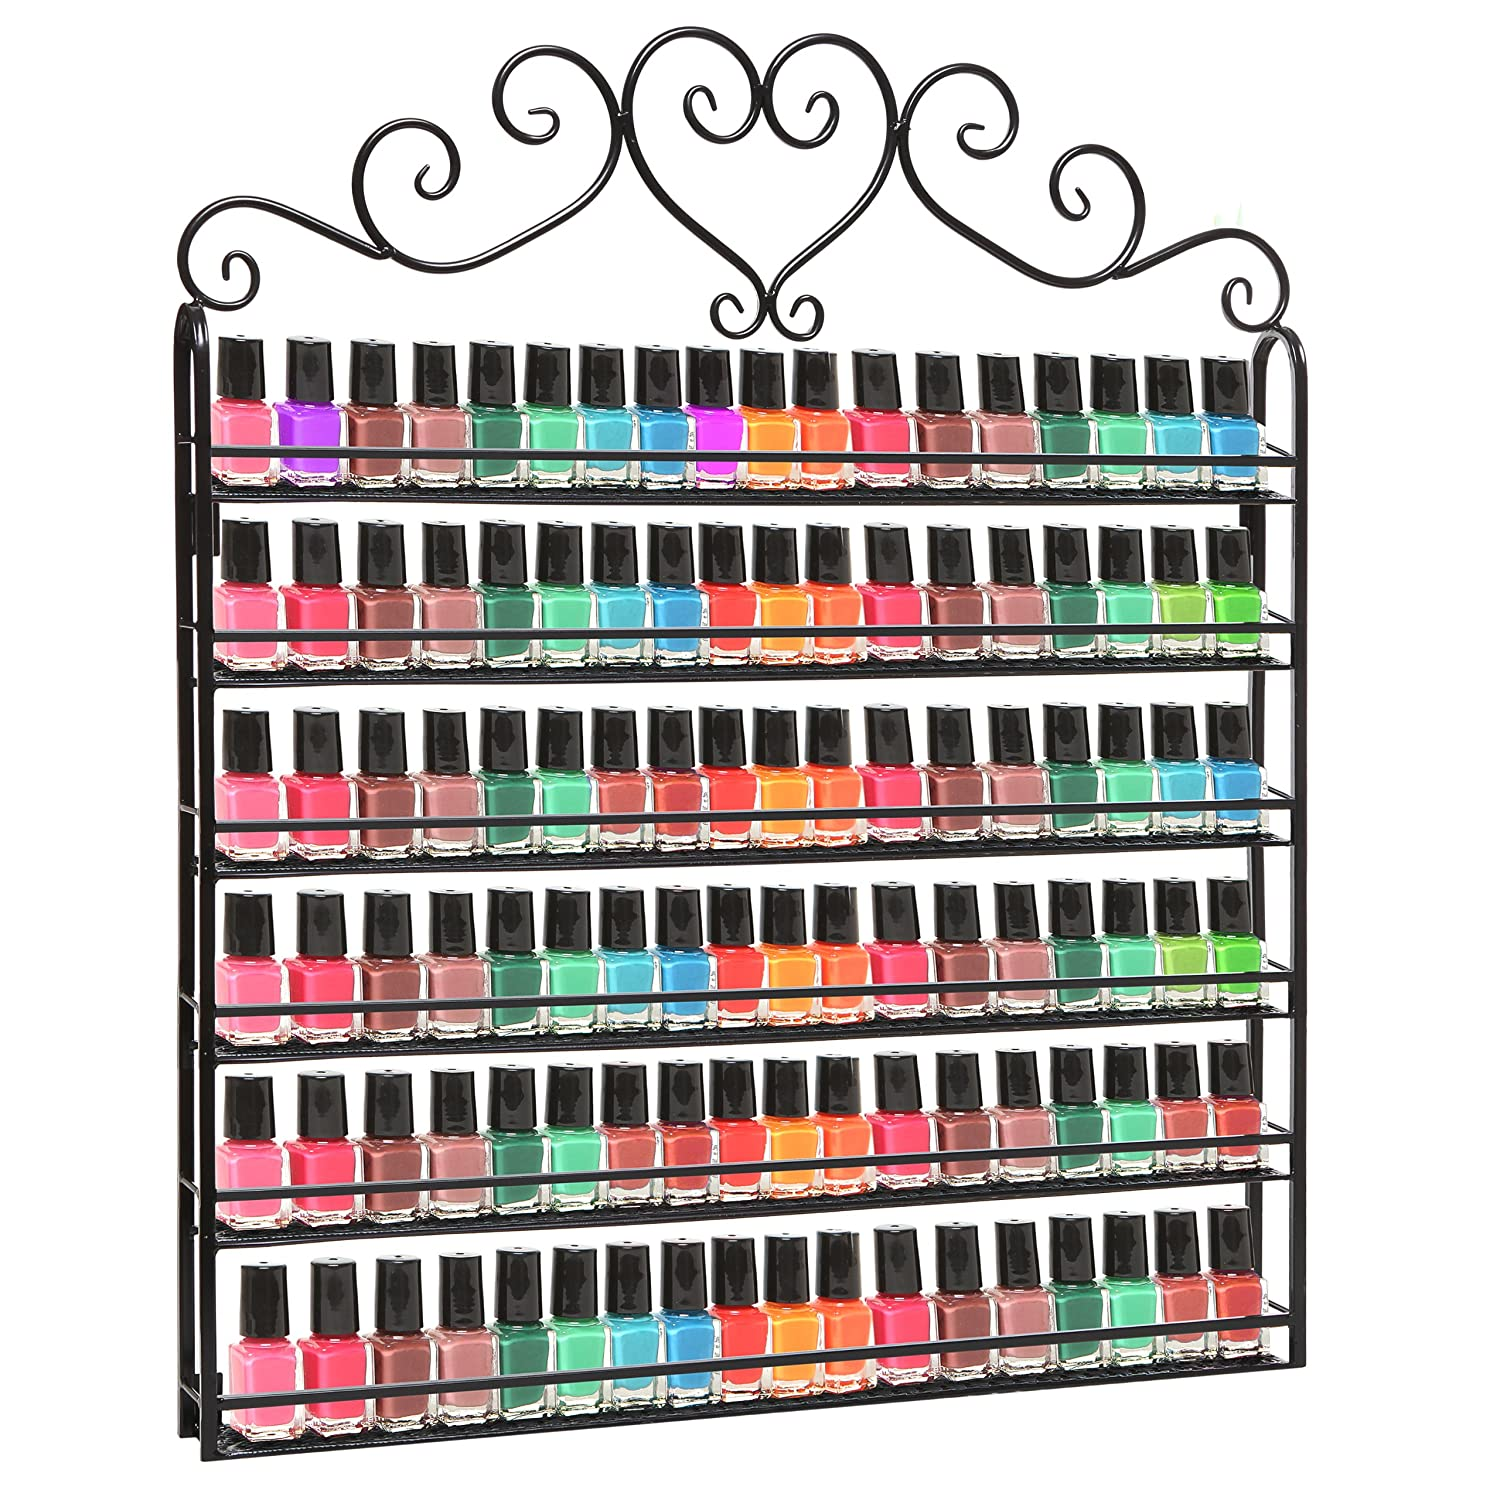 Nail Polish Rack Hanging Wall Mount Display Organizer